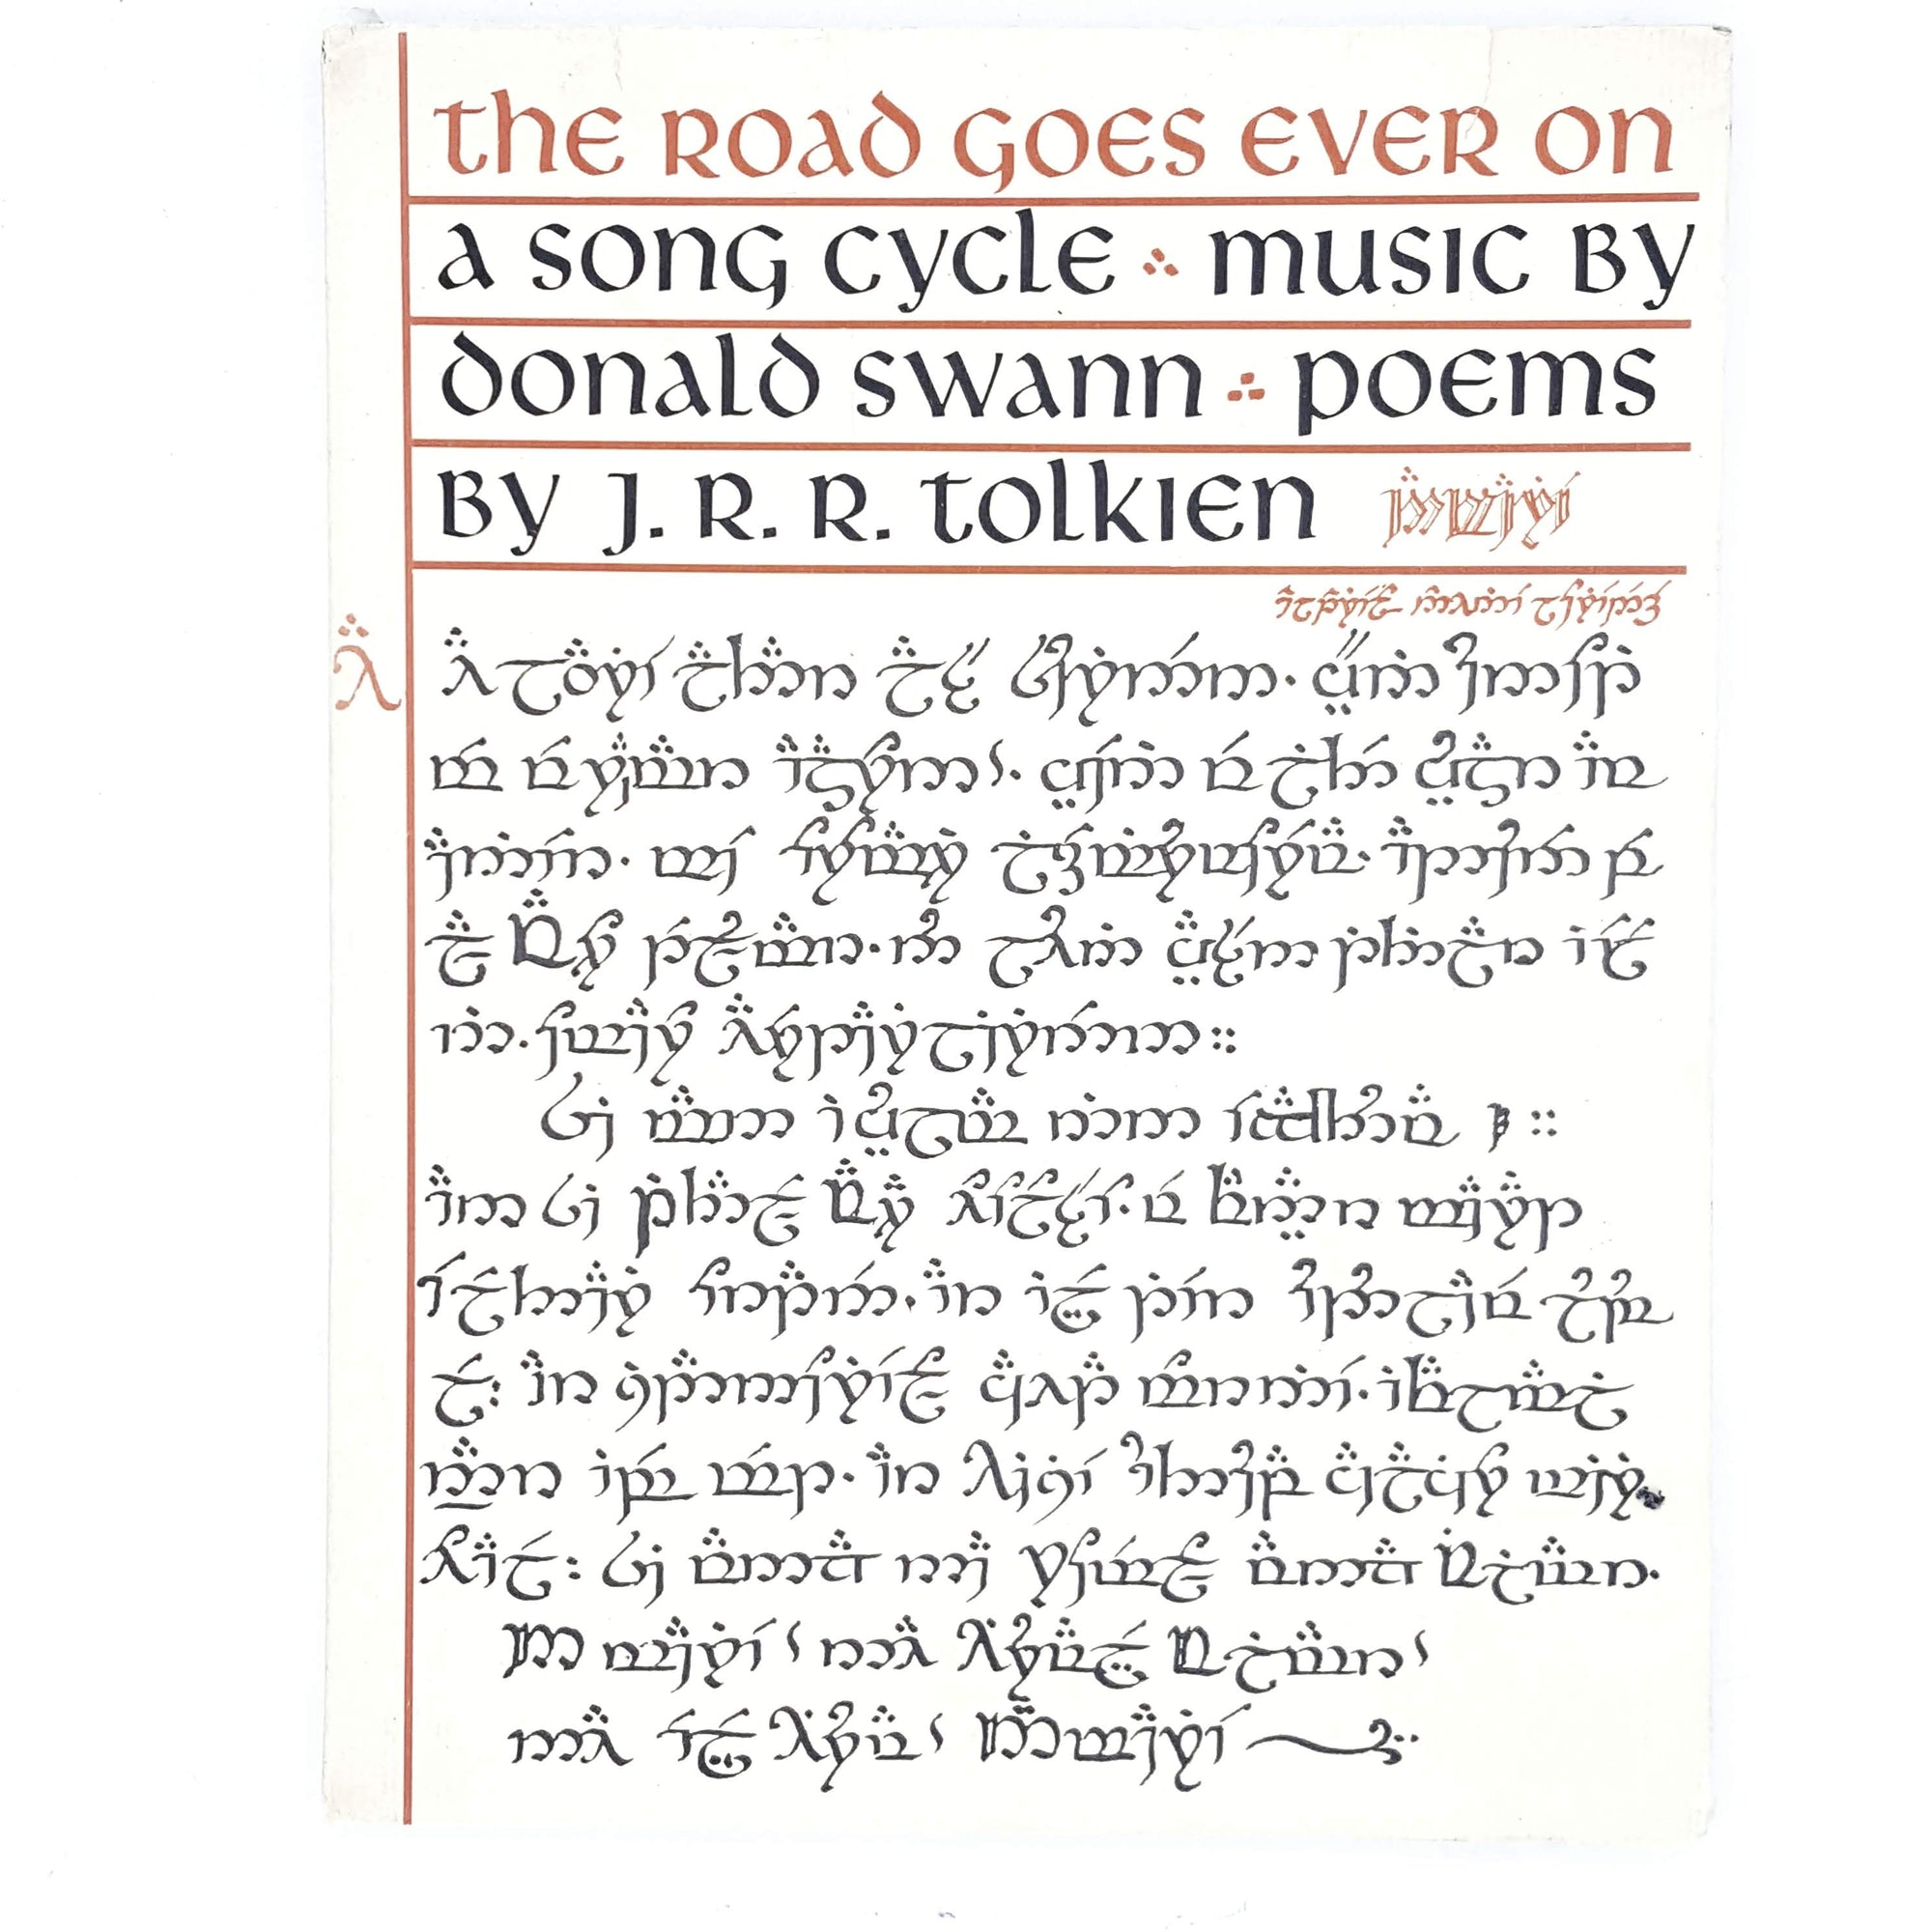 Tolkien's The Road Goes Ever On: A Song Cycle 1969